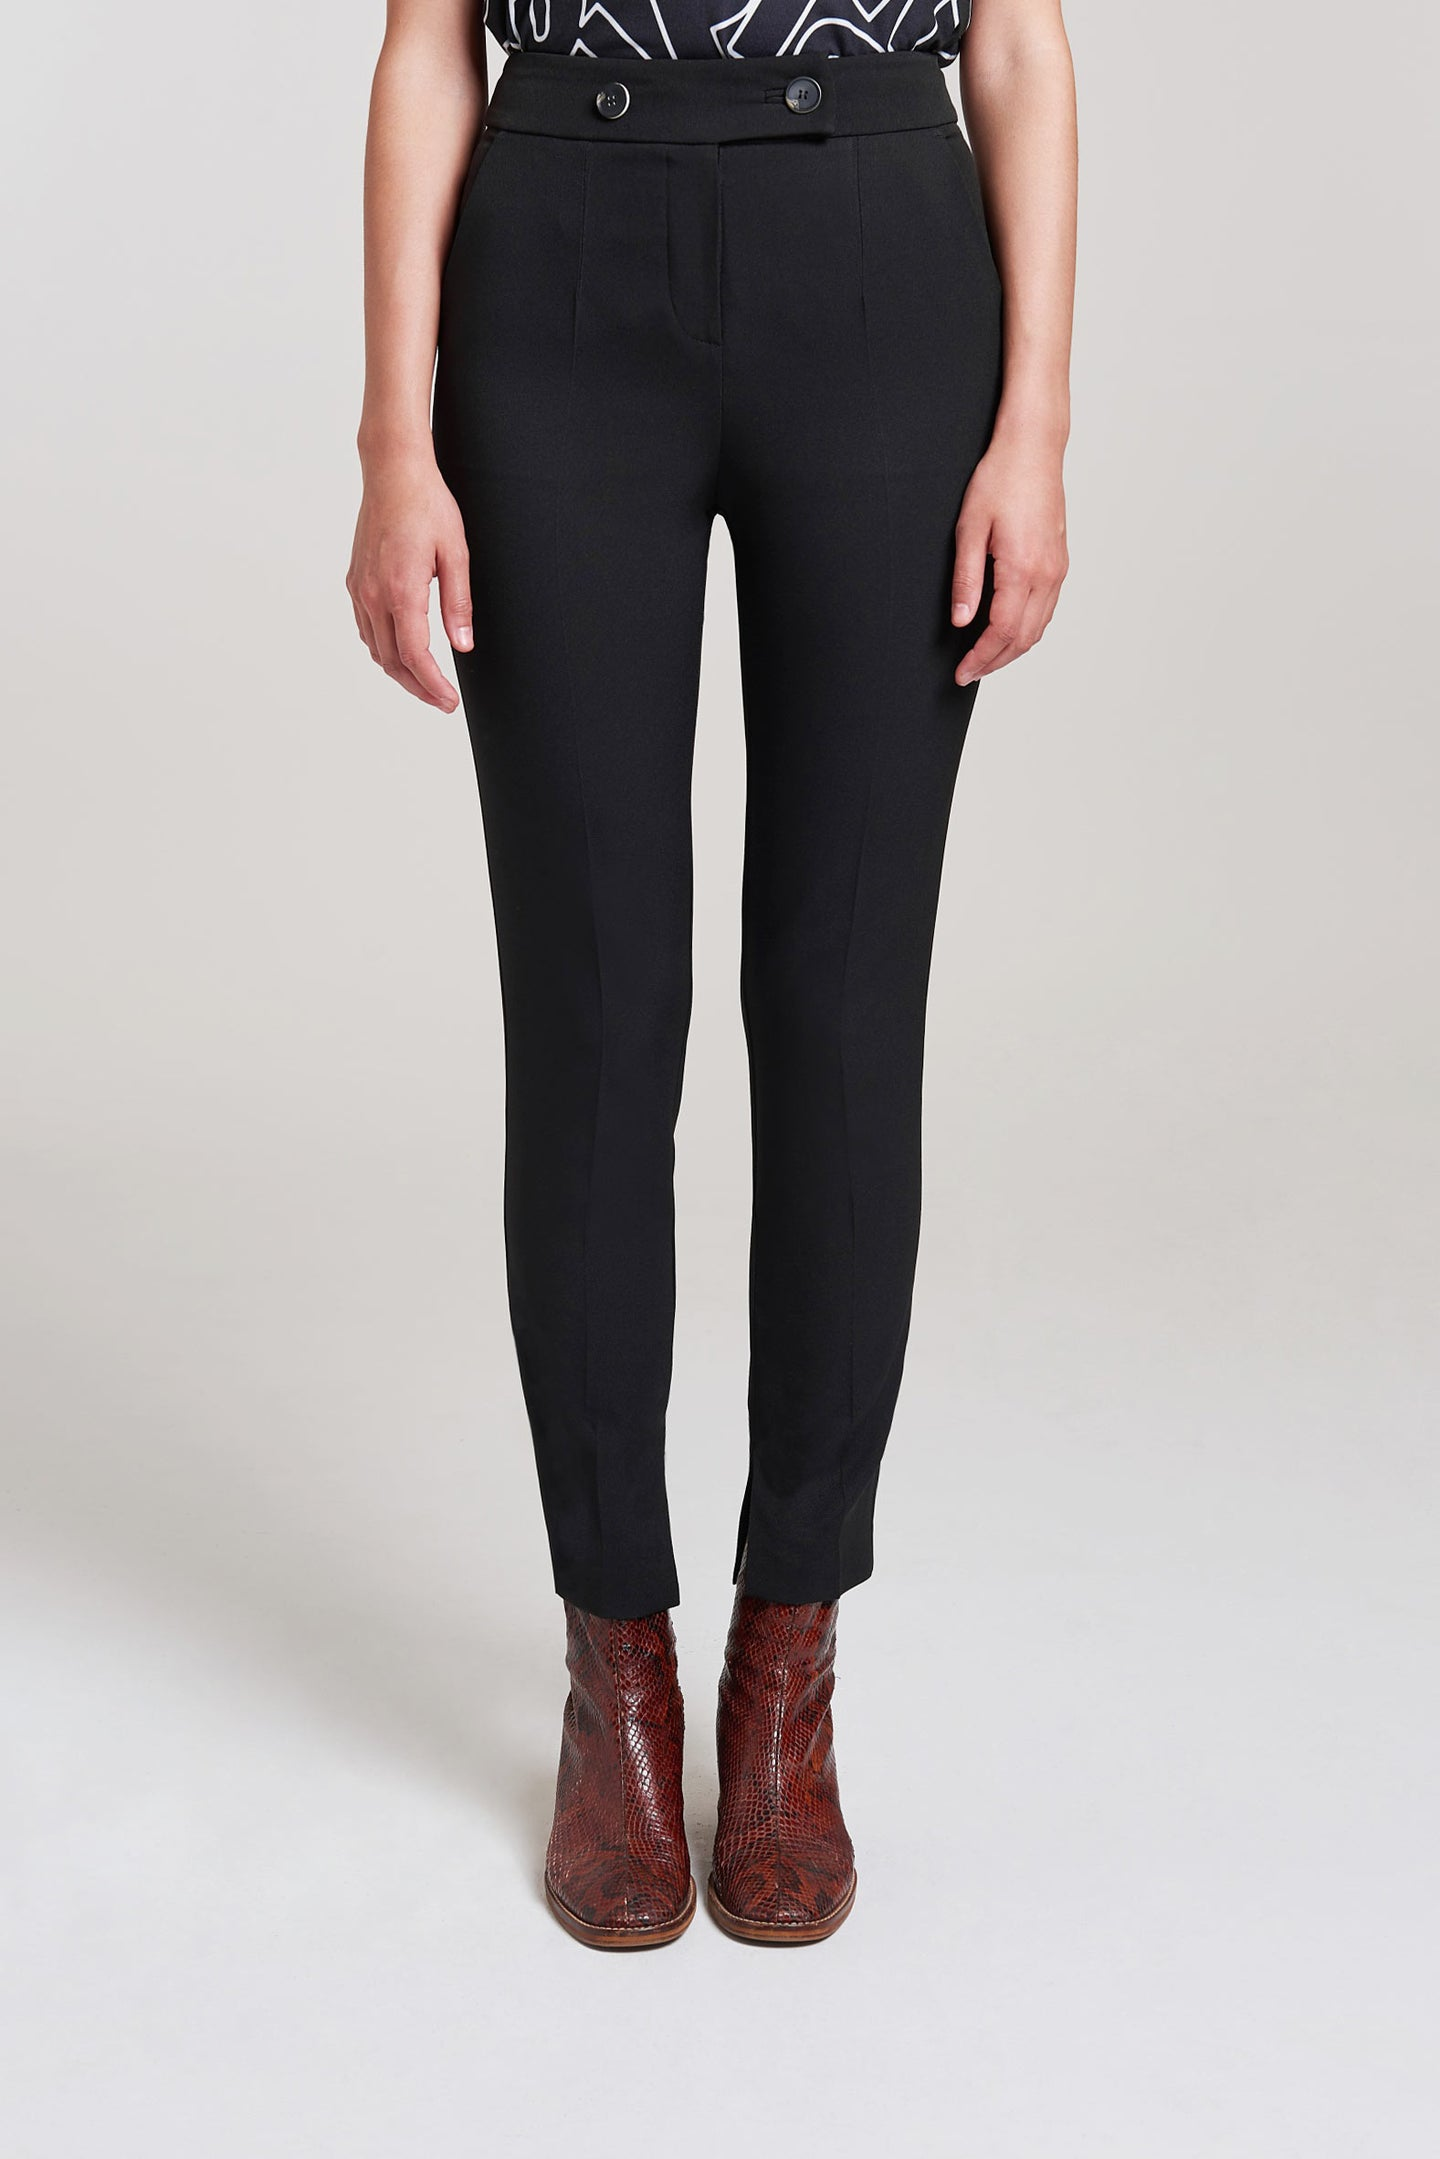 Load image into Gallery viewer, Palones Black High Waisted Slim Leg Trouser